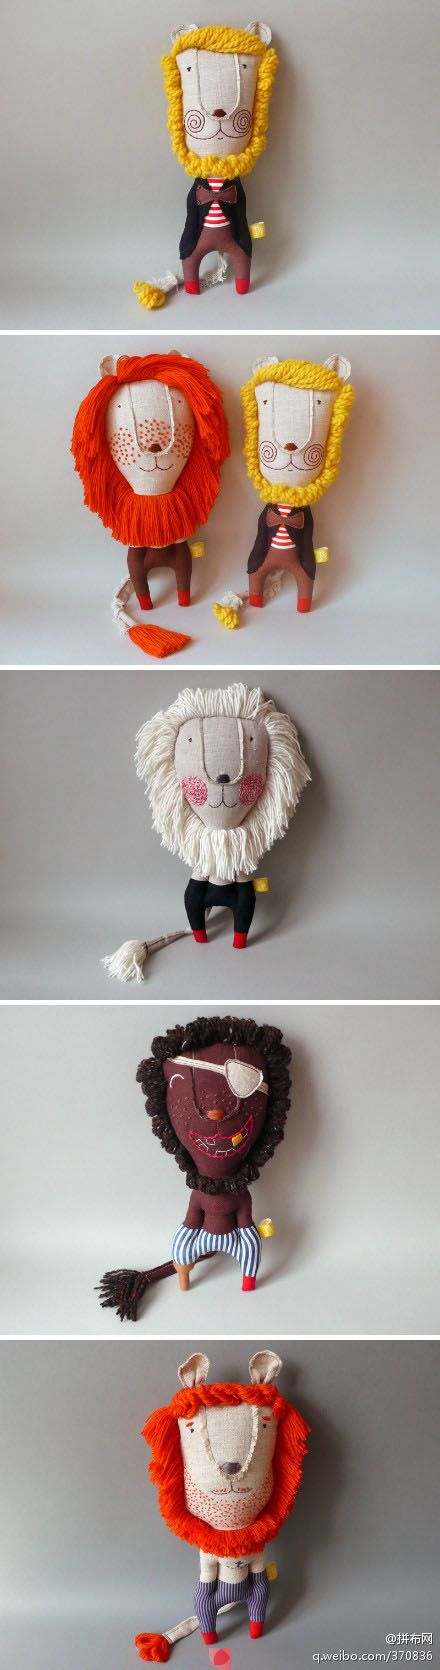 lovely hand-sewn lion plush toys. sew. stuffed animal.